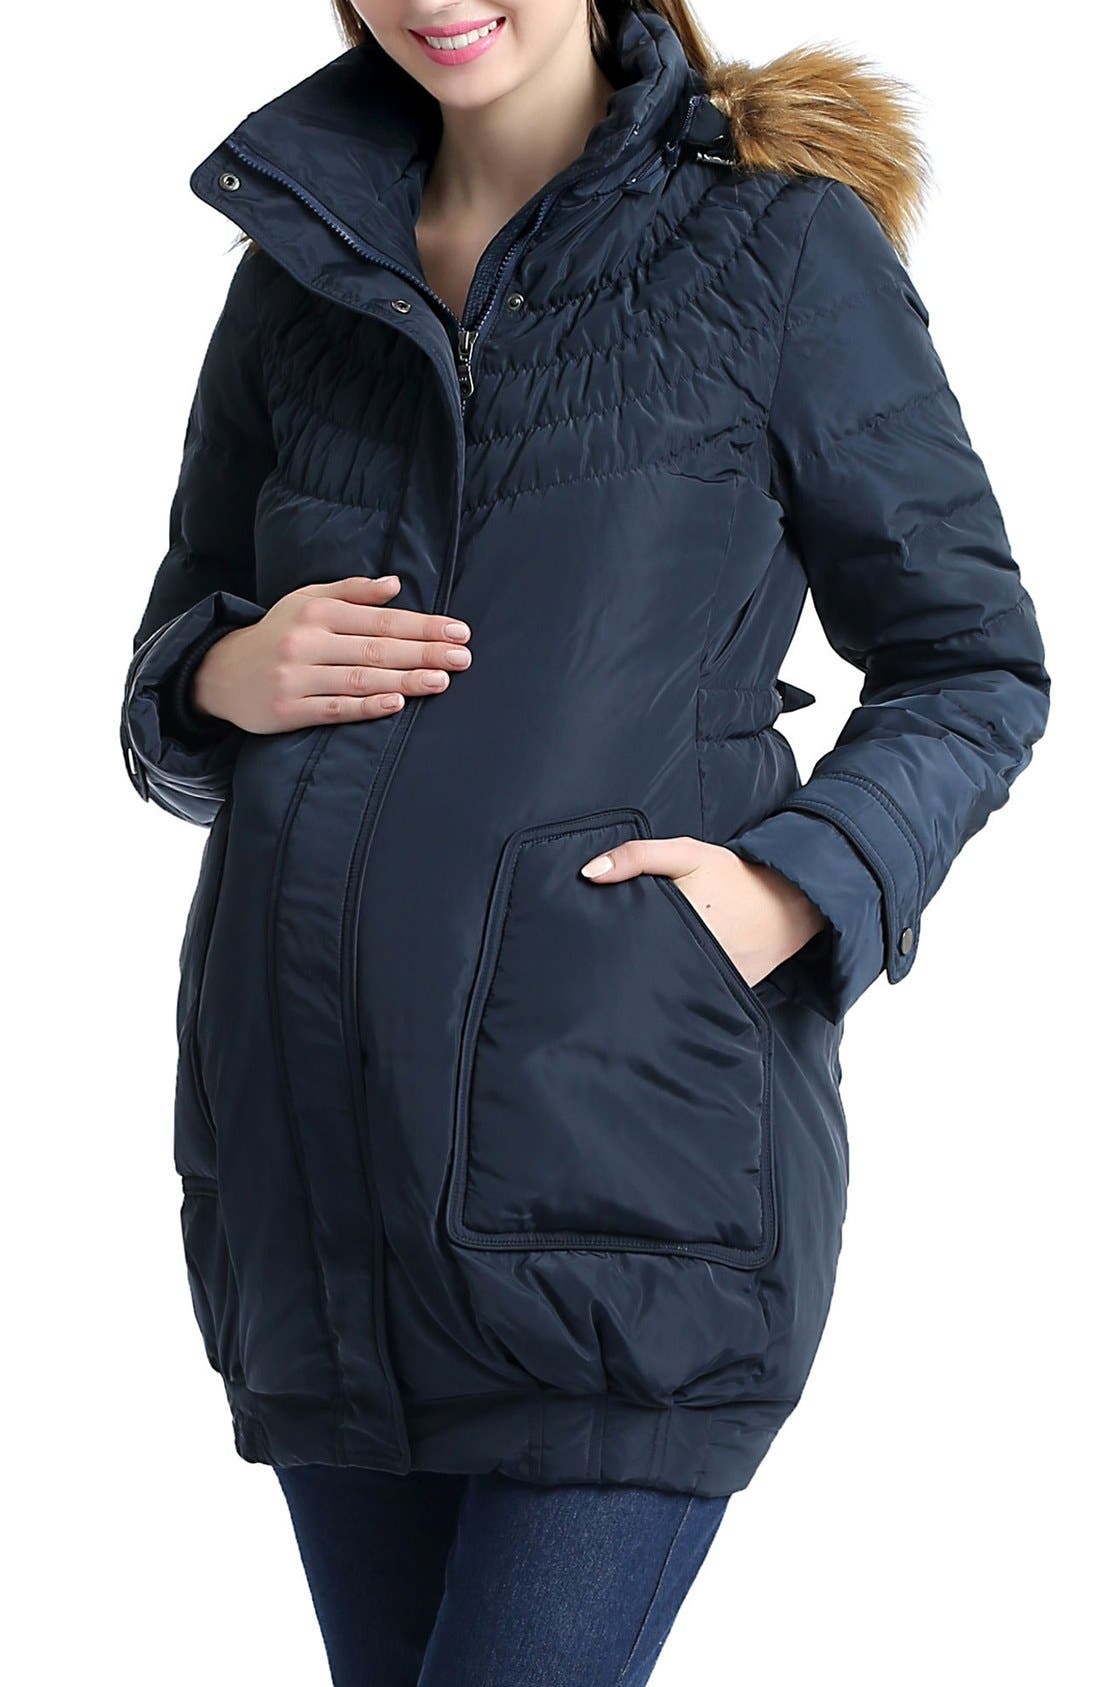 'Arlo' Water Resistant Down Maternity Parka with Baby Carrier Cover Inset,                             Alternate thumbnail 3, color,                             Navy